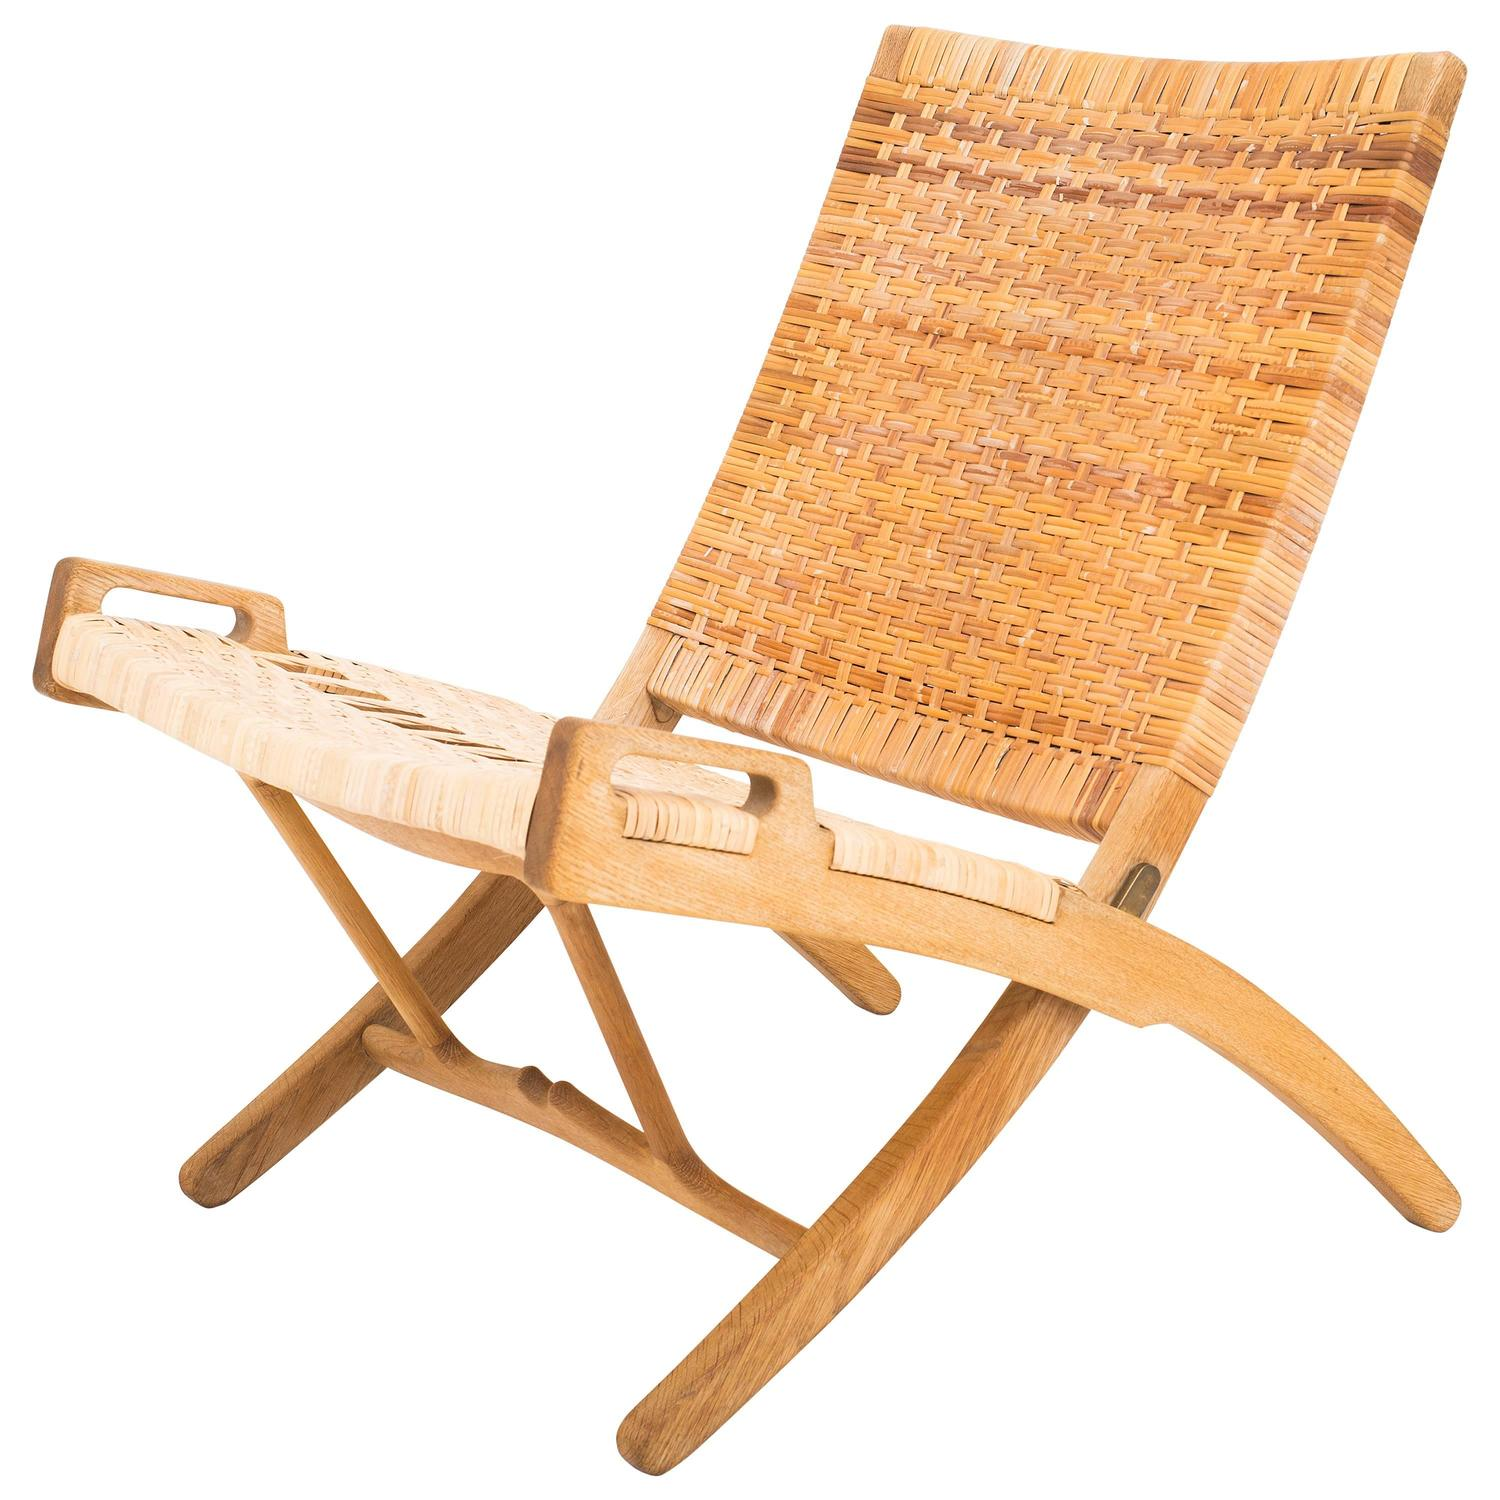 JH 512 Folding Chair at 1stdibs